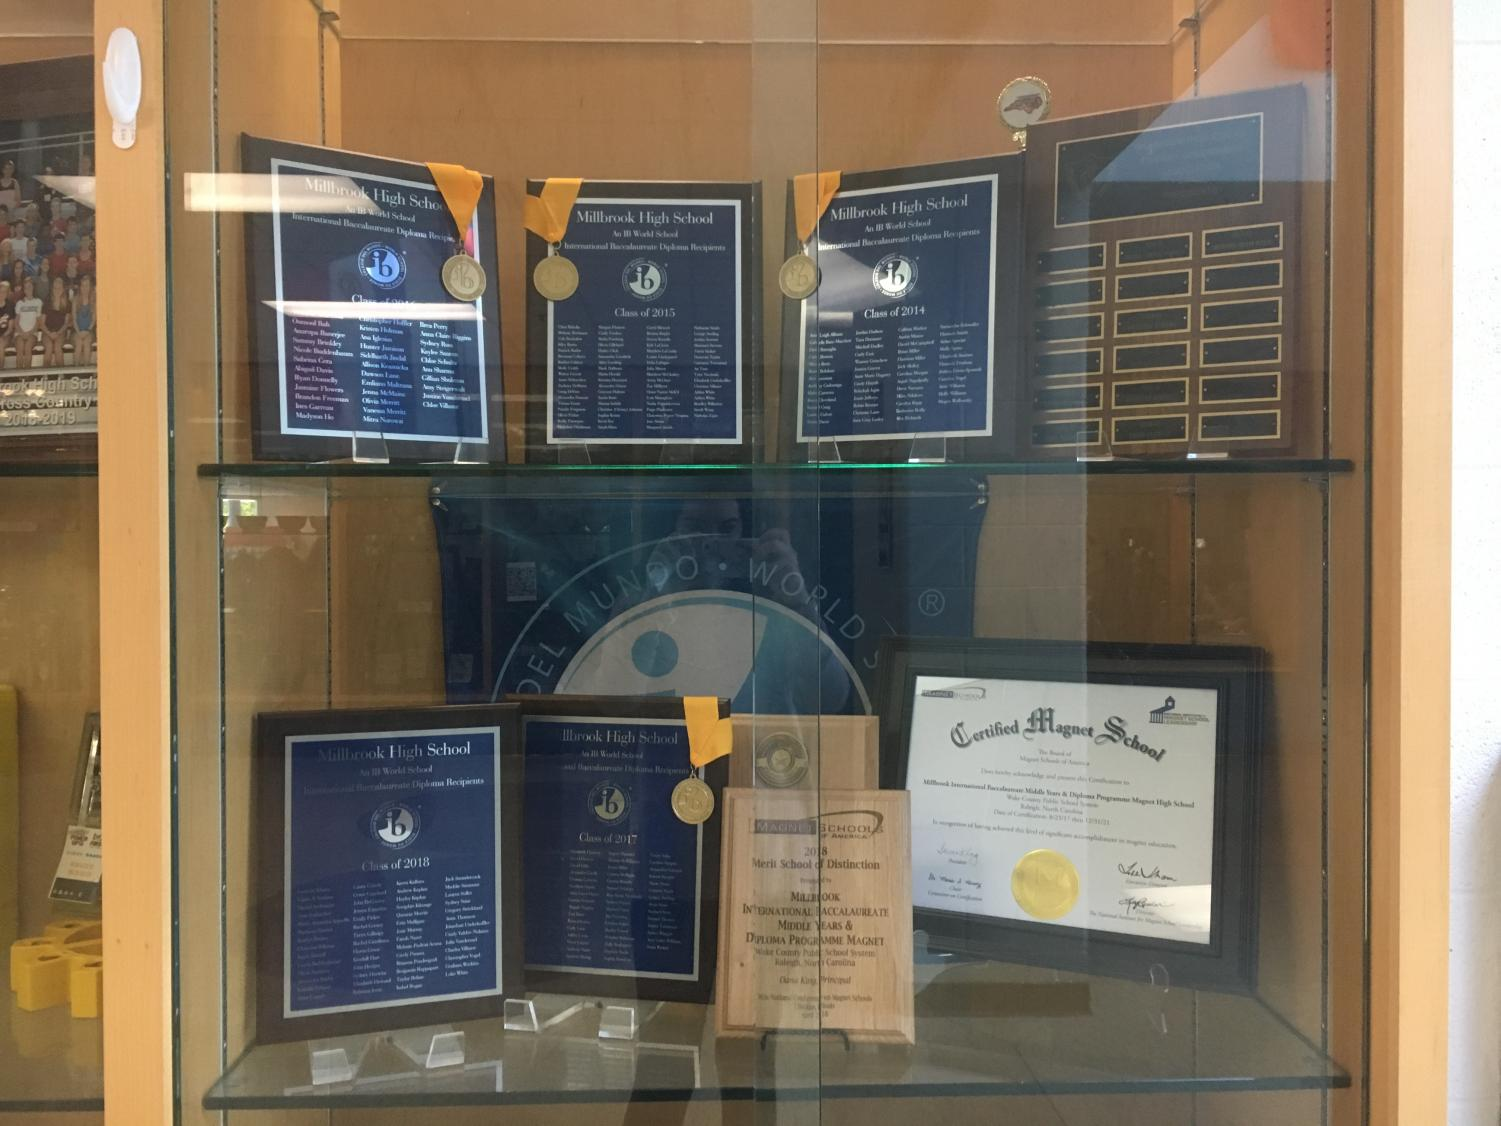 Celebrating the many years of success the IB Diploma Programme has brought Millbrook students, the display case in the lobby represents years of academic excellence. Even as the programme reaches the end of its time at Millbrook, students and staff will continue to reminisce fondly of their days in the program for years to come.